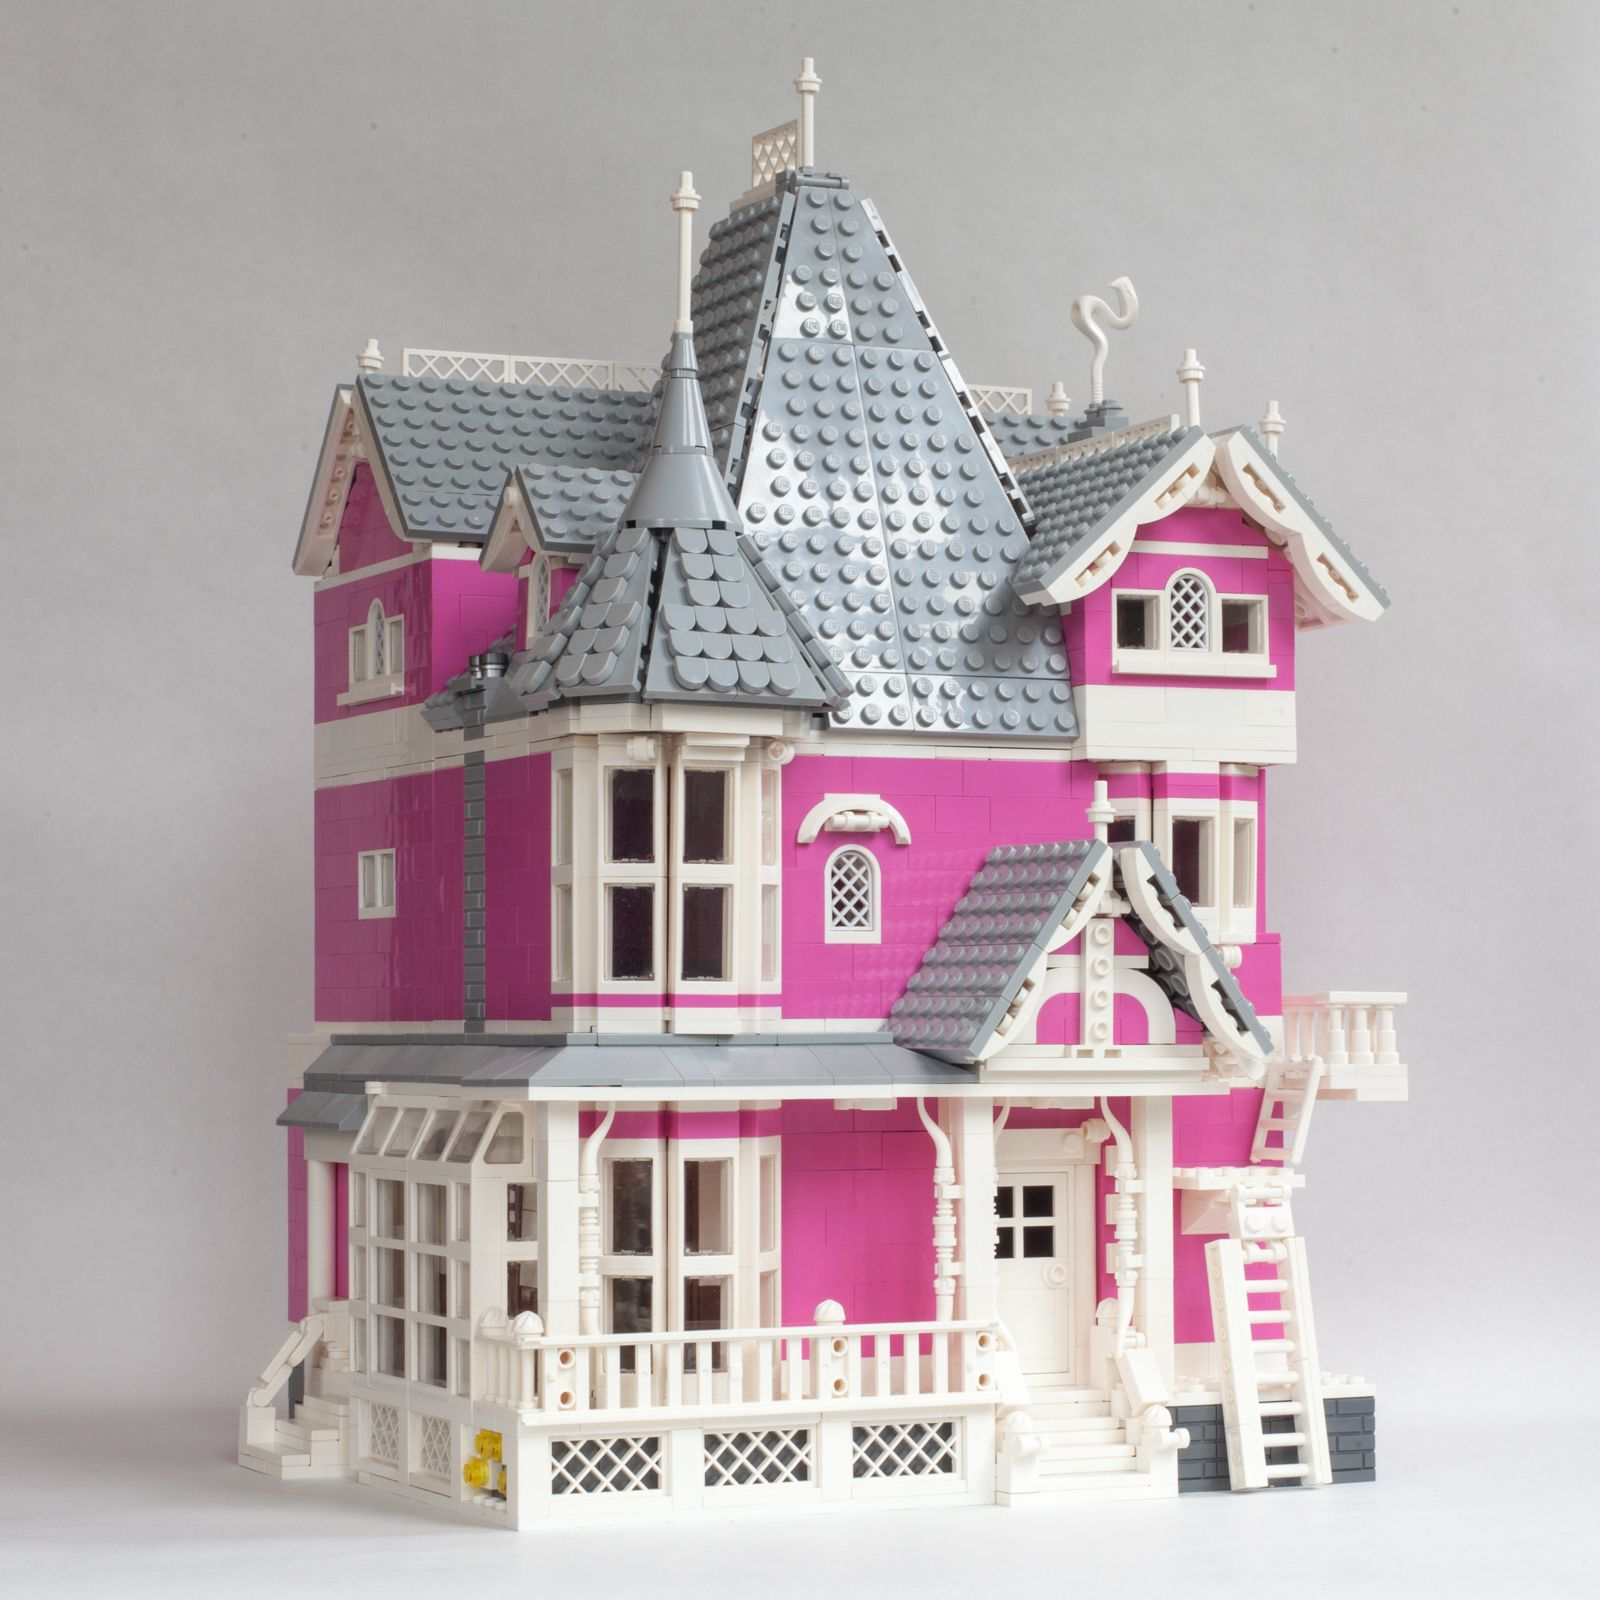 Coraline S Pink Palace Apartments Coraline Pink Palace Coraline Aesthetic